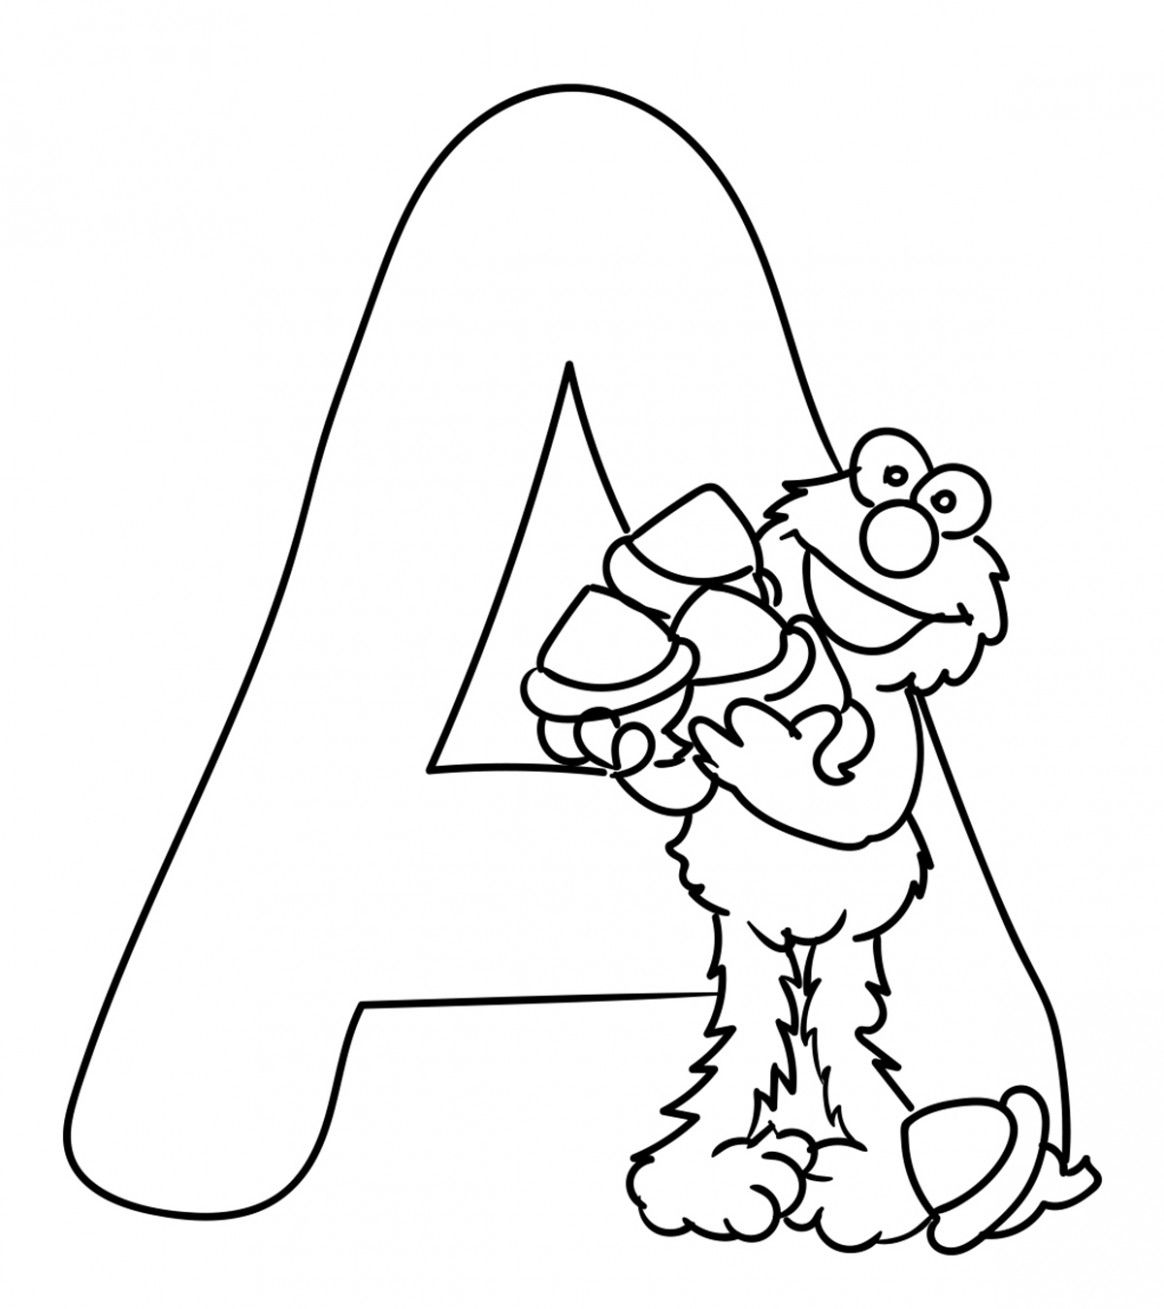 11 Letter A Coloring Pages In